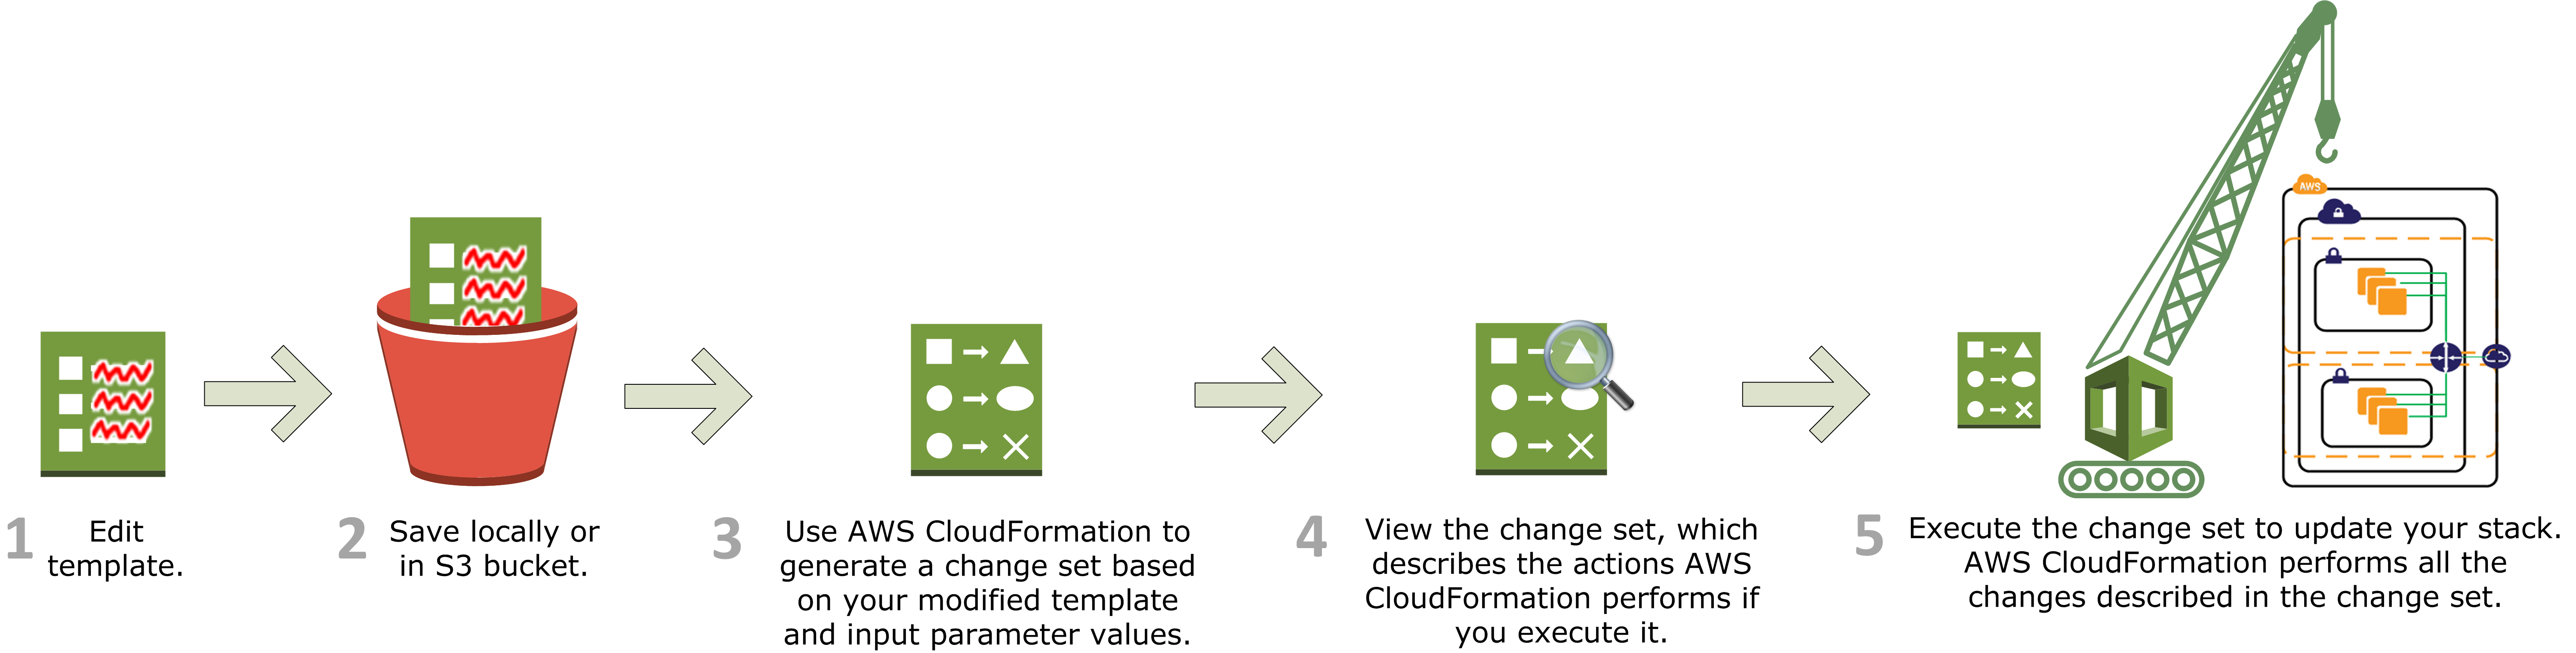 how does aws cloudformation work    aws cloudformationafter reviewing the changes  you can execute the change set to update your stack or you can create a new change set  the following diagram summarizes the